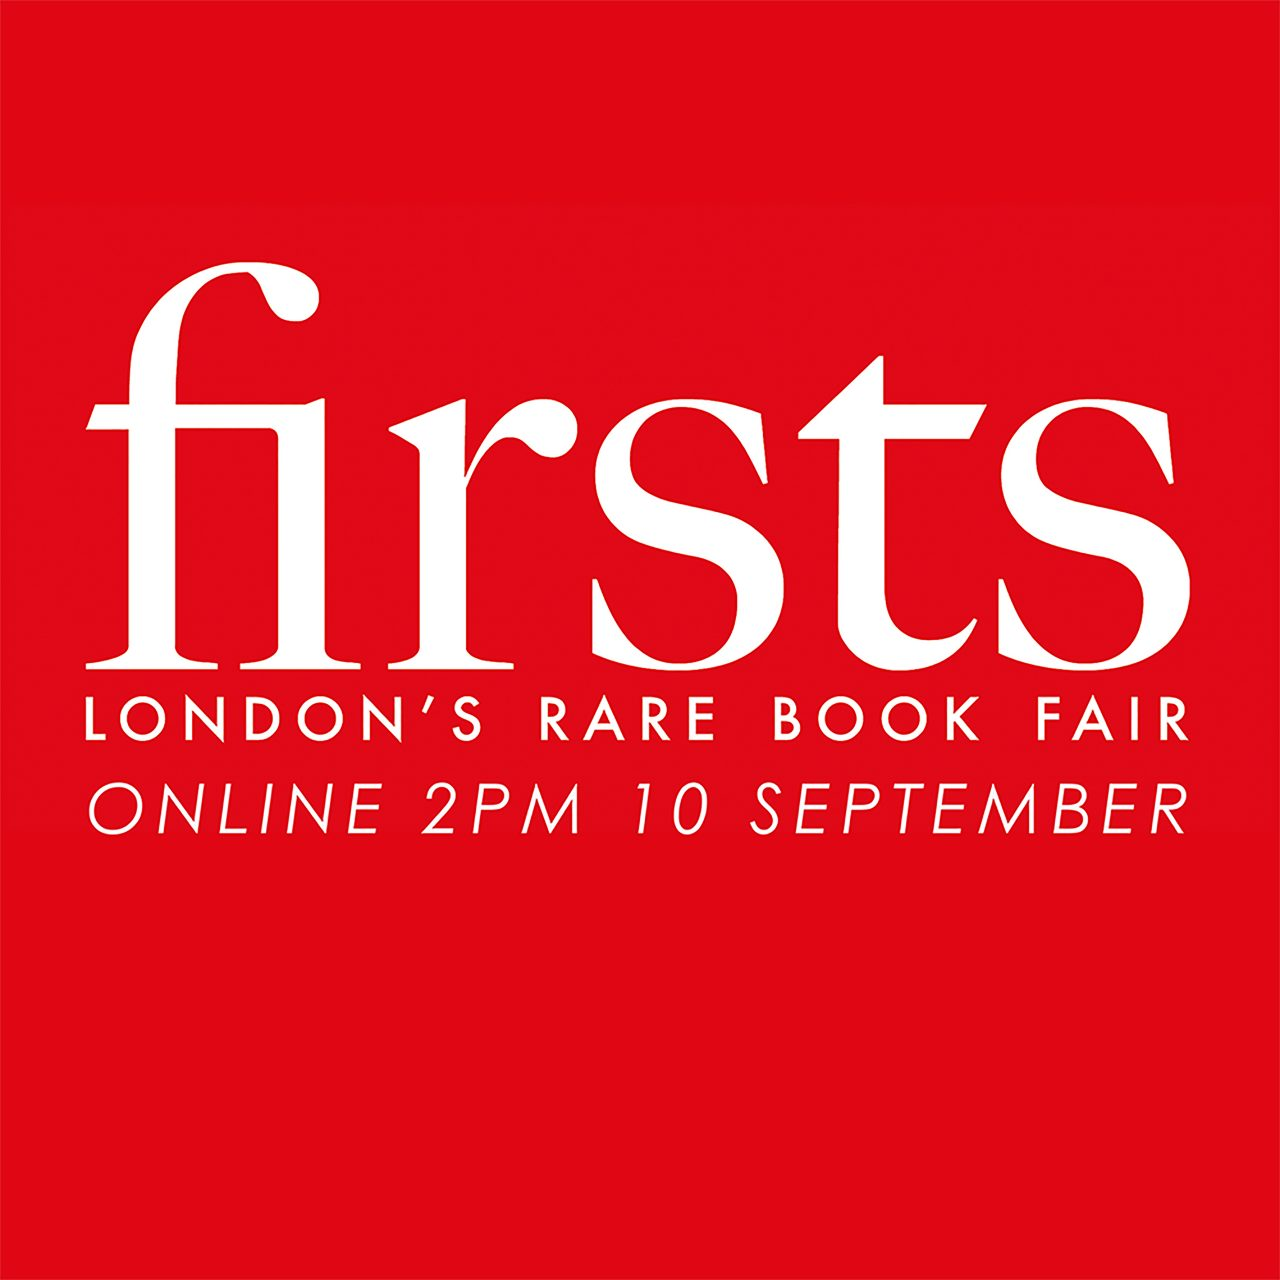 Firsts Online 10 14 September Logo for RBH